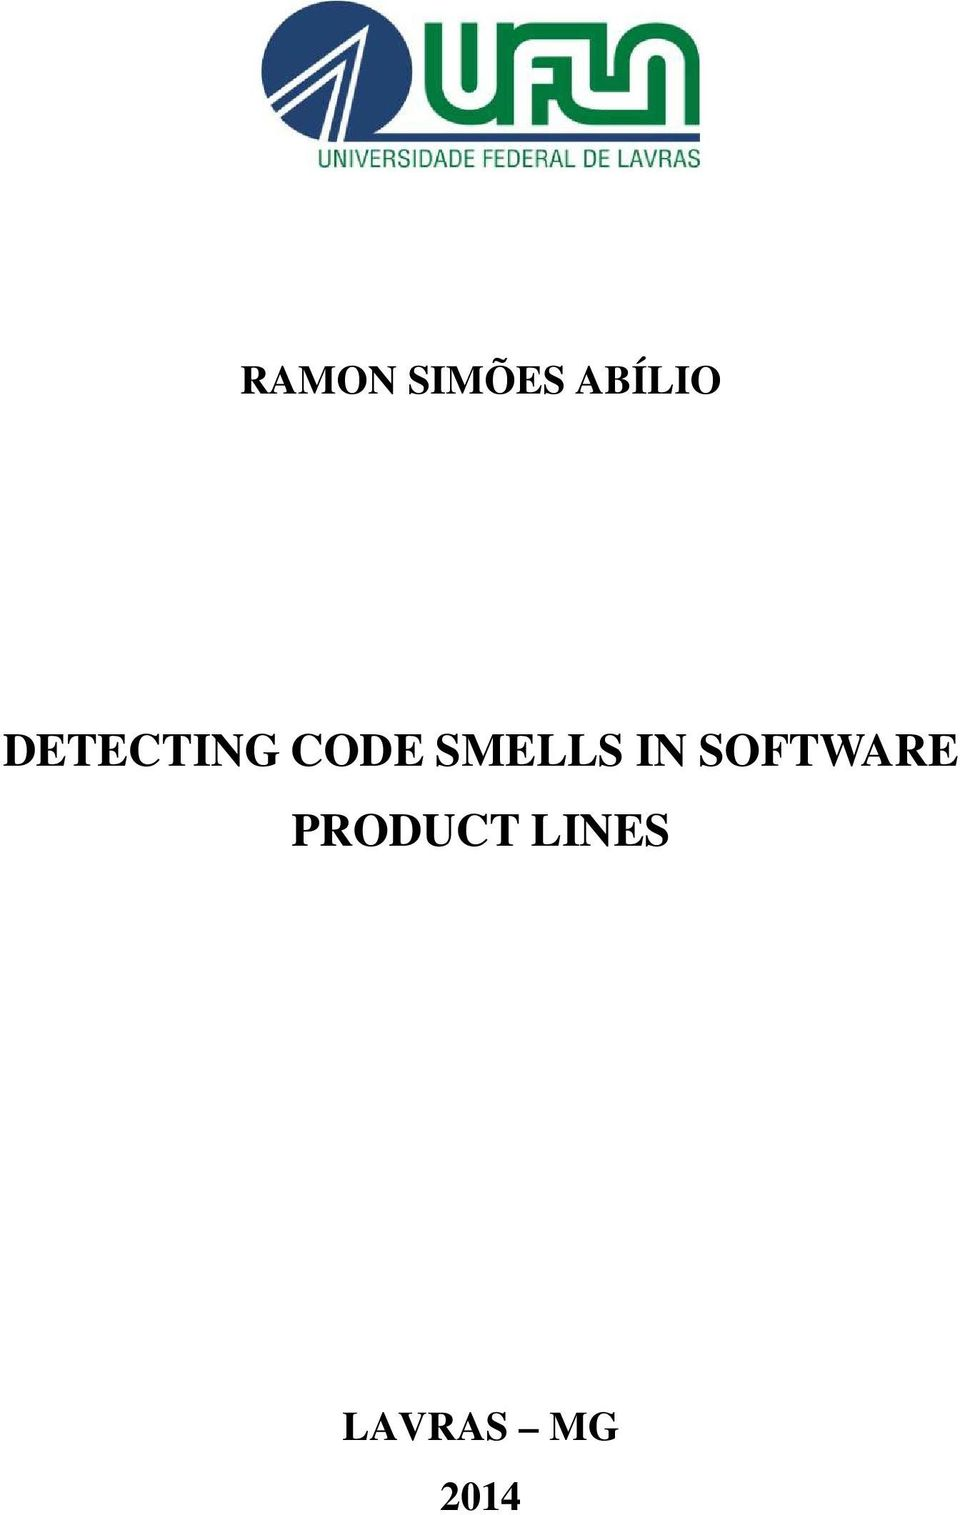 SMELLS IN SOFTWARE